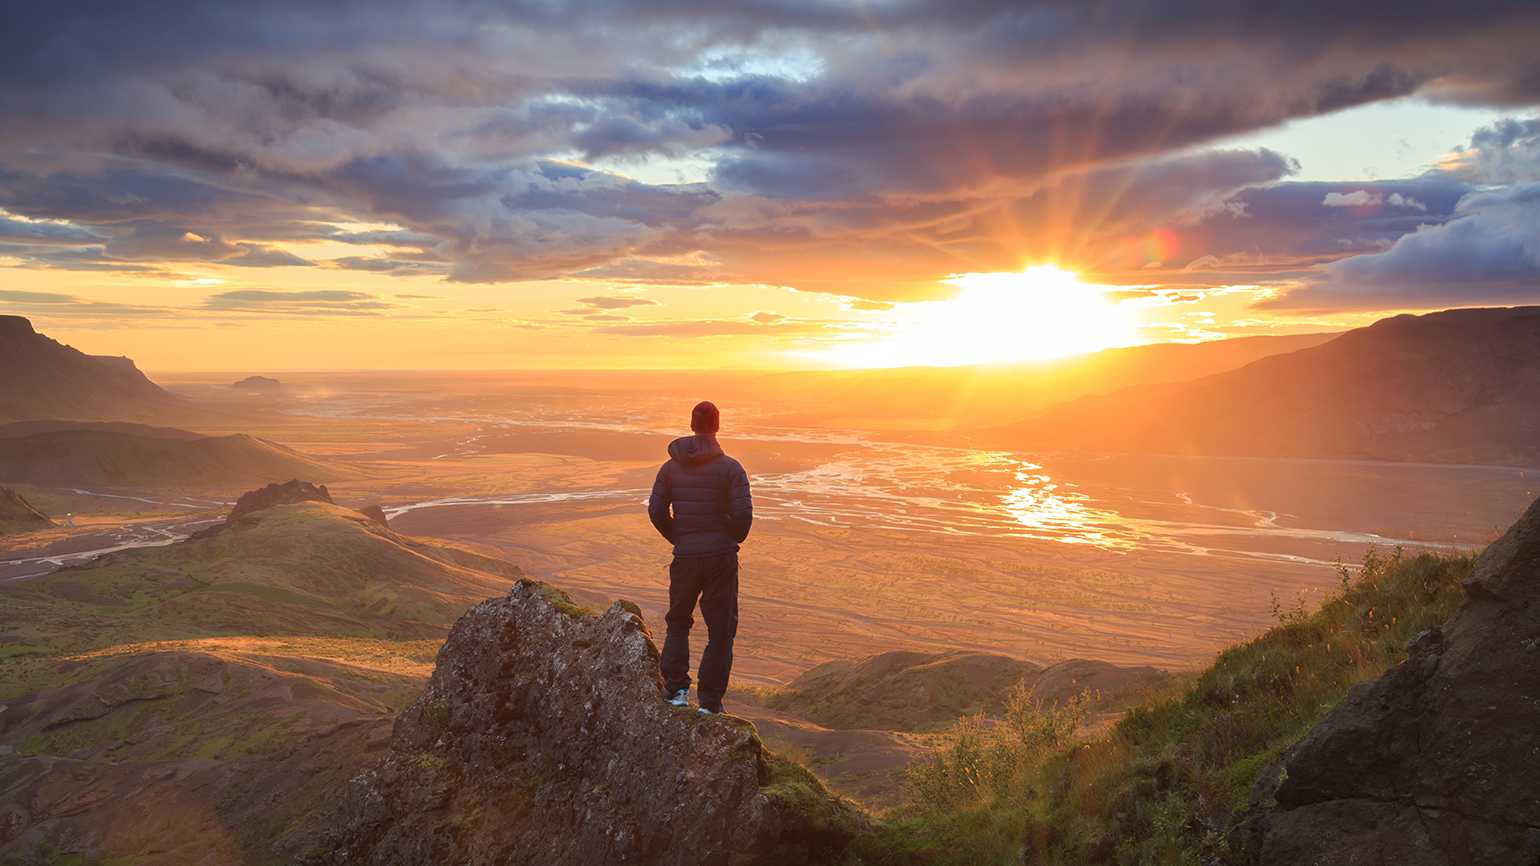 A hiker takes in a mountain sunrise